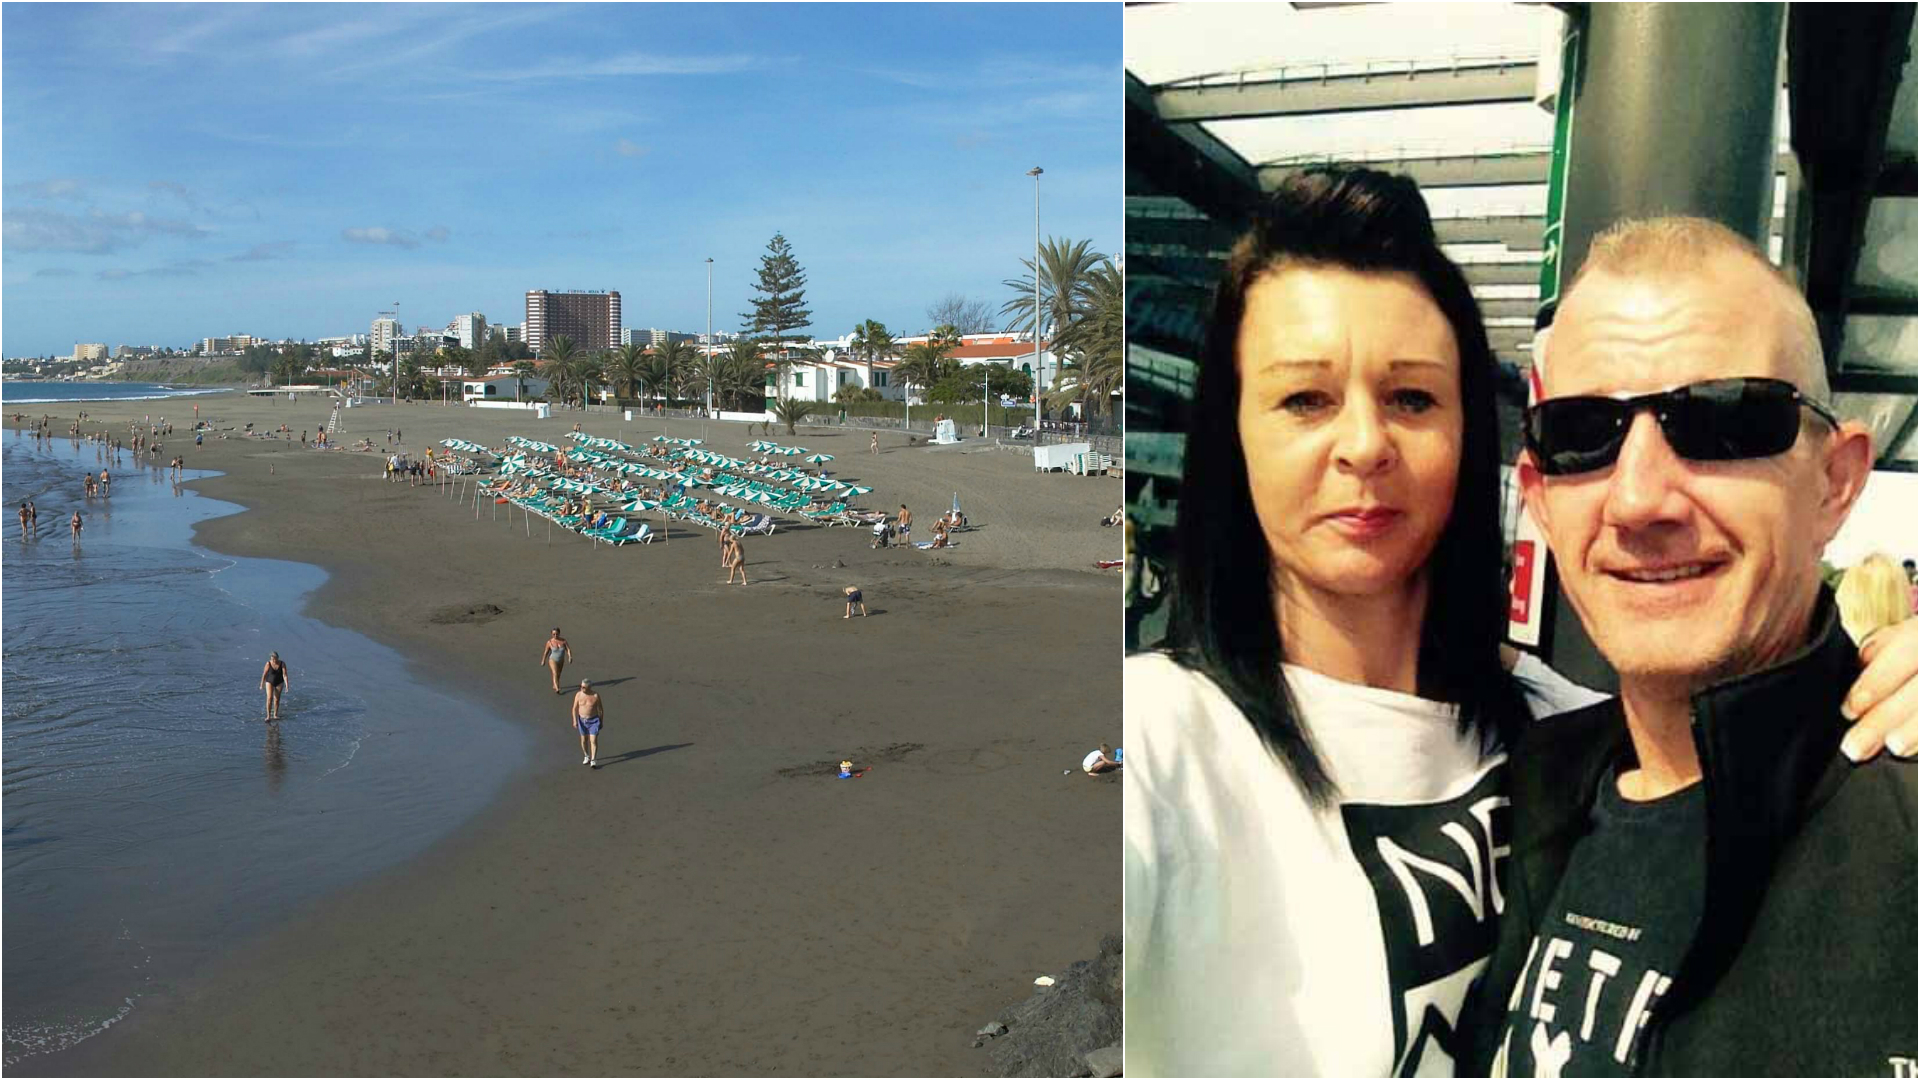 Family forced to sleep on beach after being kicked out of hotel